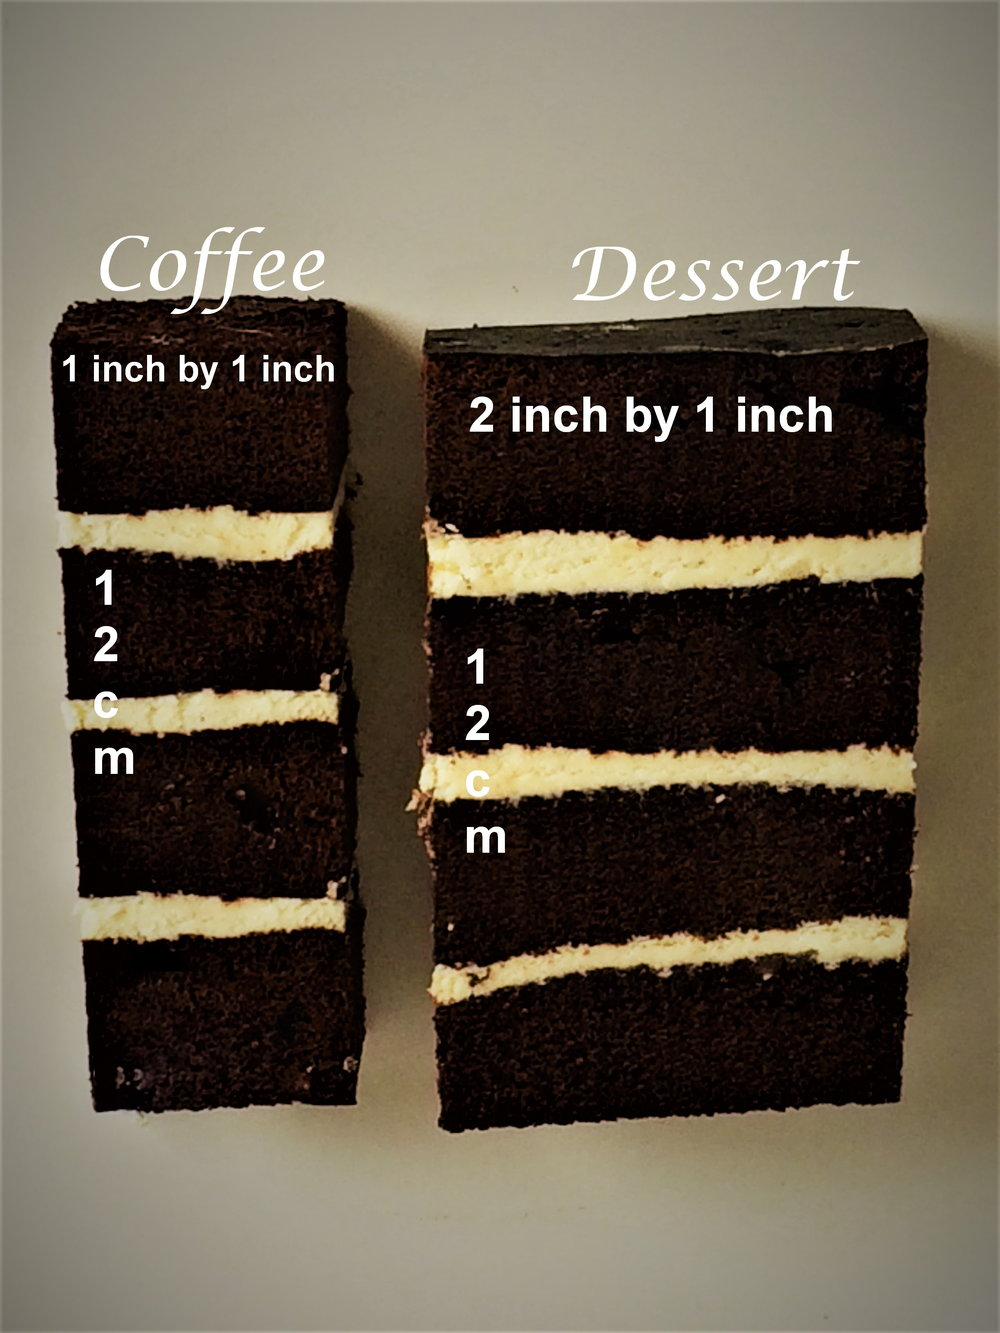 wedding cake dessert serving size how big should your wedding cake be article by cake date 22518